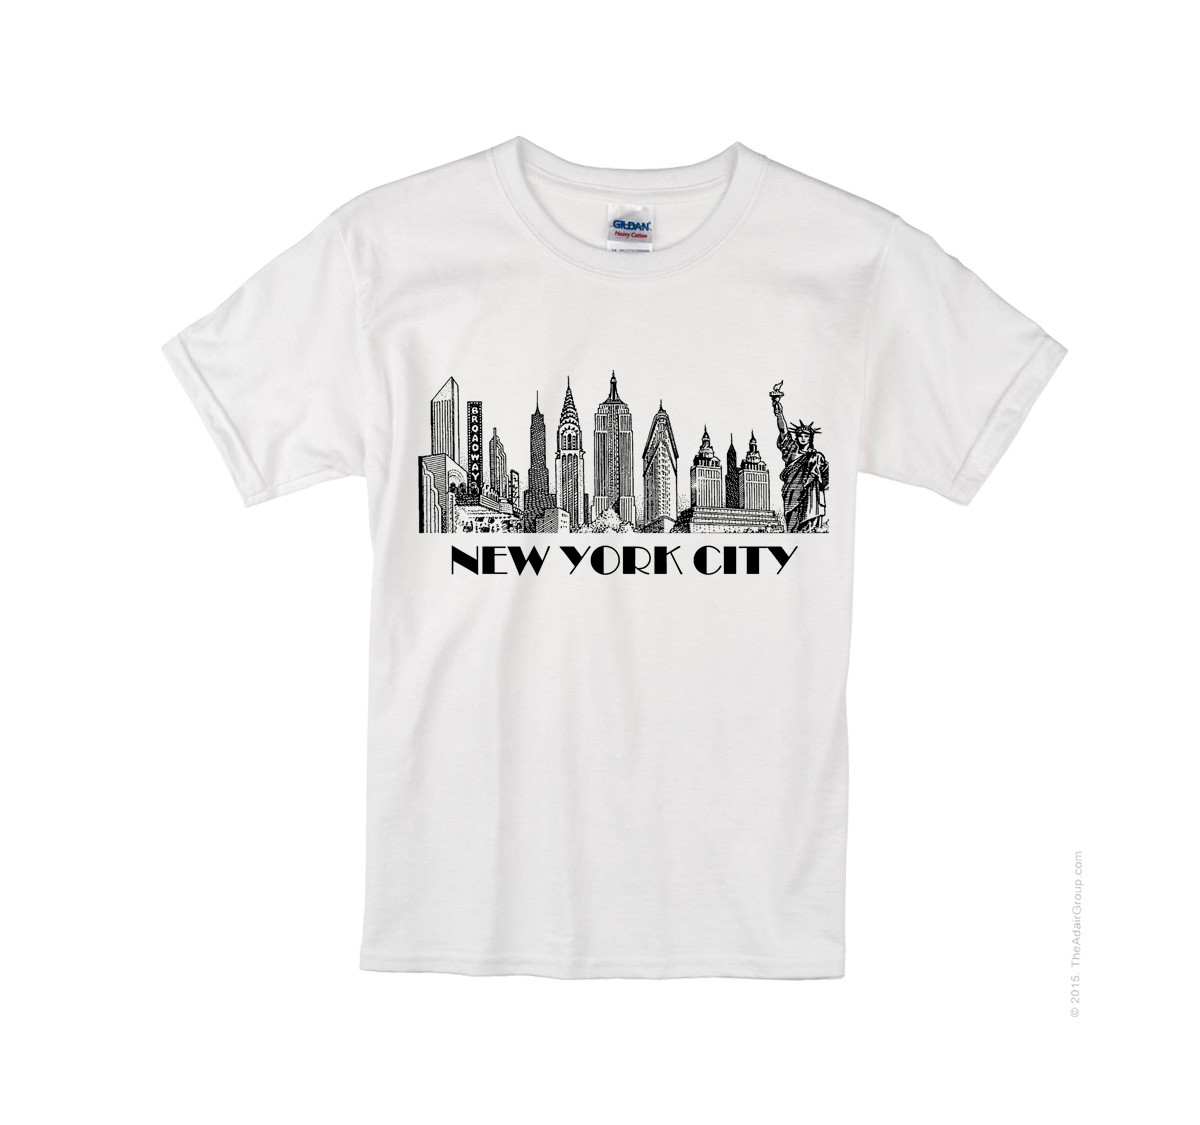 48ff2c8f9 Kids NYC Skyline T-shirt -White Photo. Loading zoom